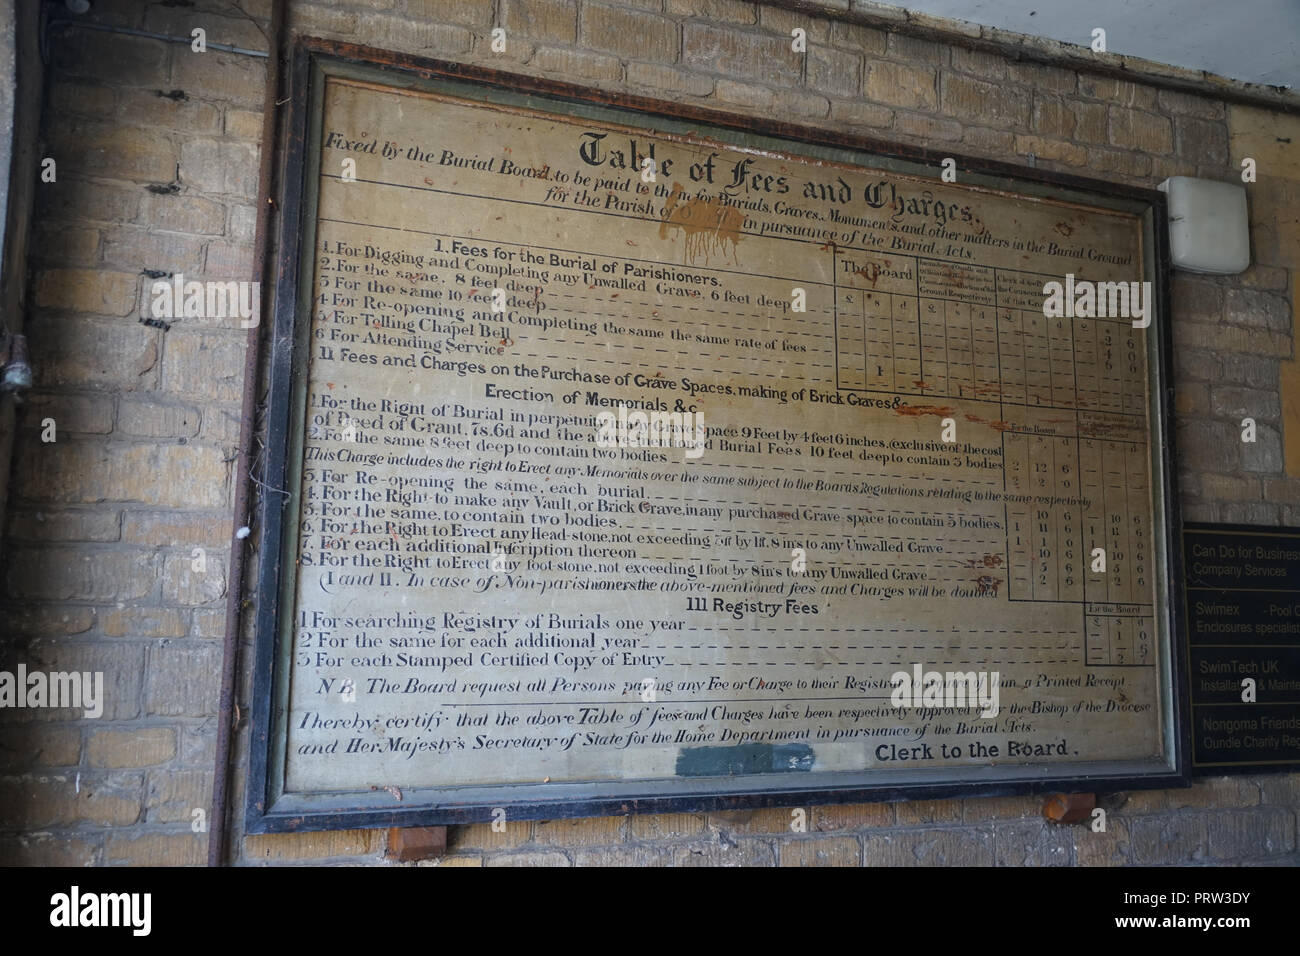 Table of Burial Fees and Charges at Oundle Museum - Stock Image